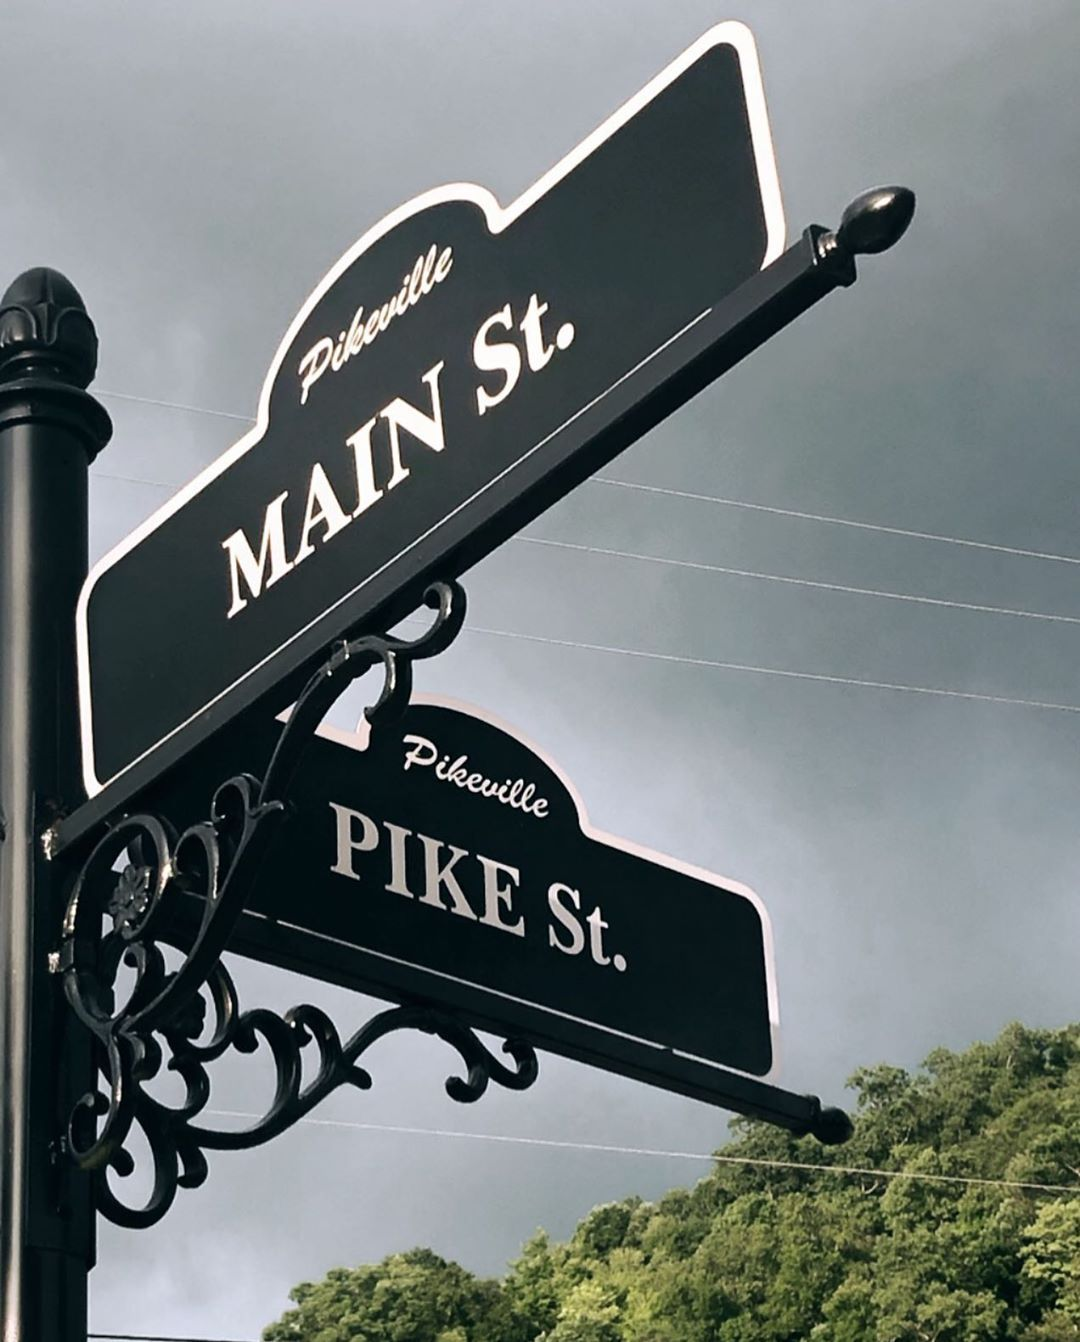 It's been so gloomy here in Pikeville lately it's making me want summer more and more everyday. Who agrees?! 🙋🏼‍♀️ #pikevilleky #pikeville #smalltown #pikeandmain #streetsign #photography #nikon #talmagephotograpy #bringonsummer #rain #kentucky #mainstreet